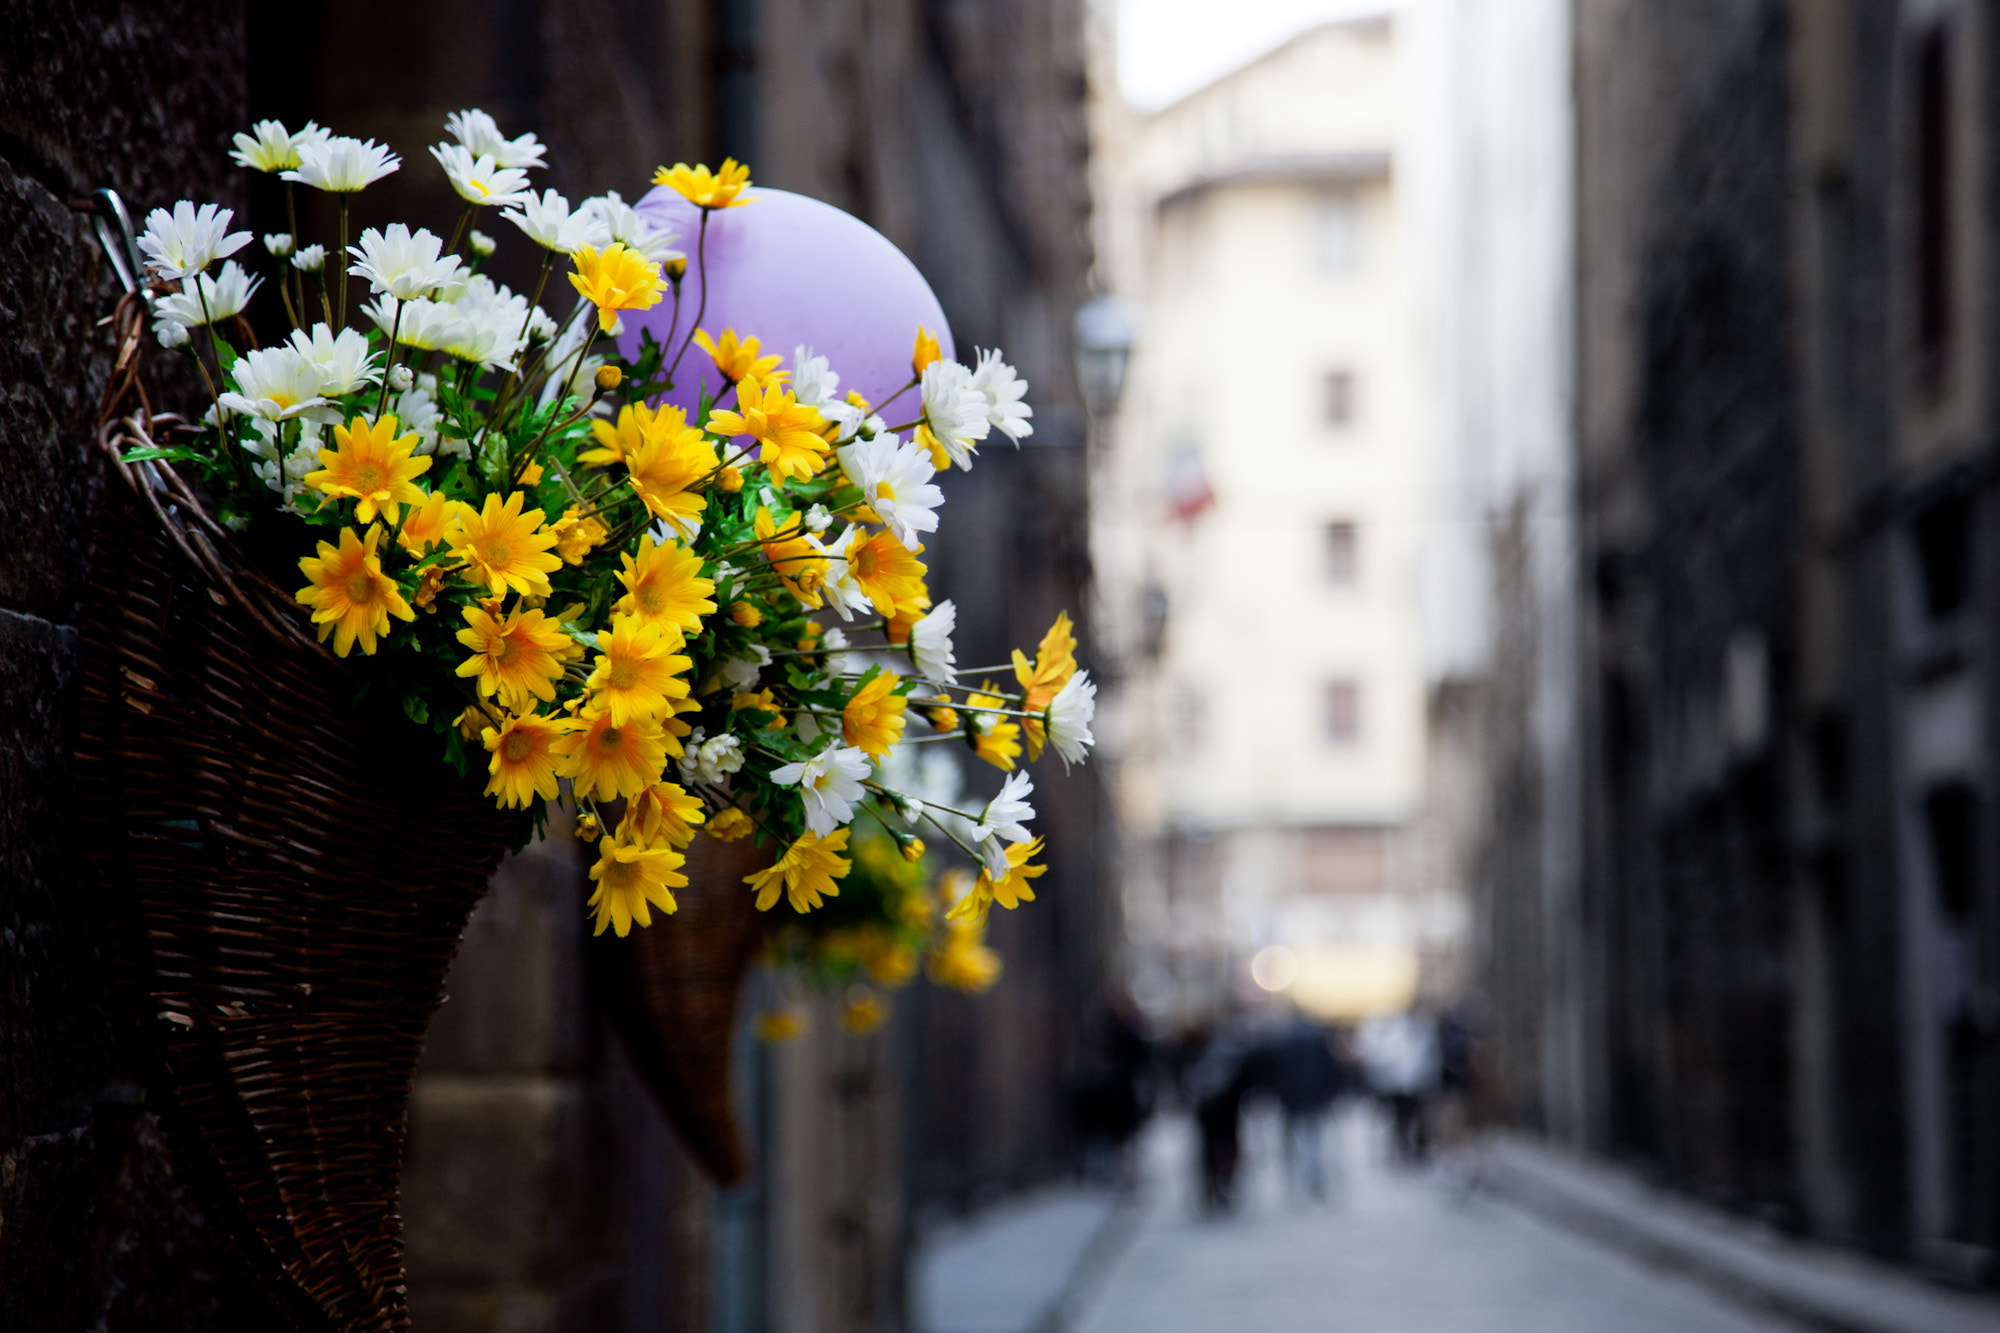 Photograph Flowers in Italy by Mark Prince on 500px